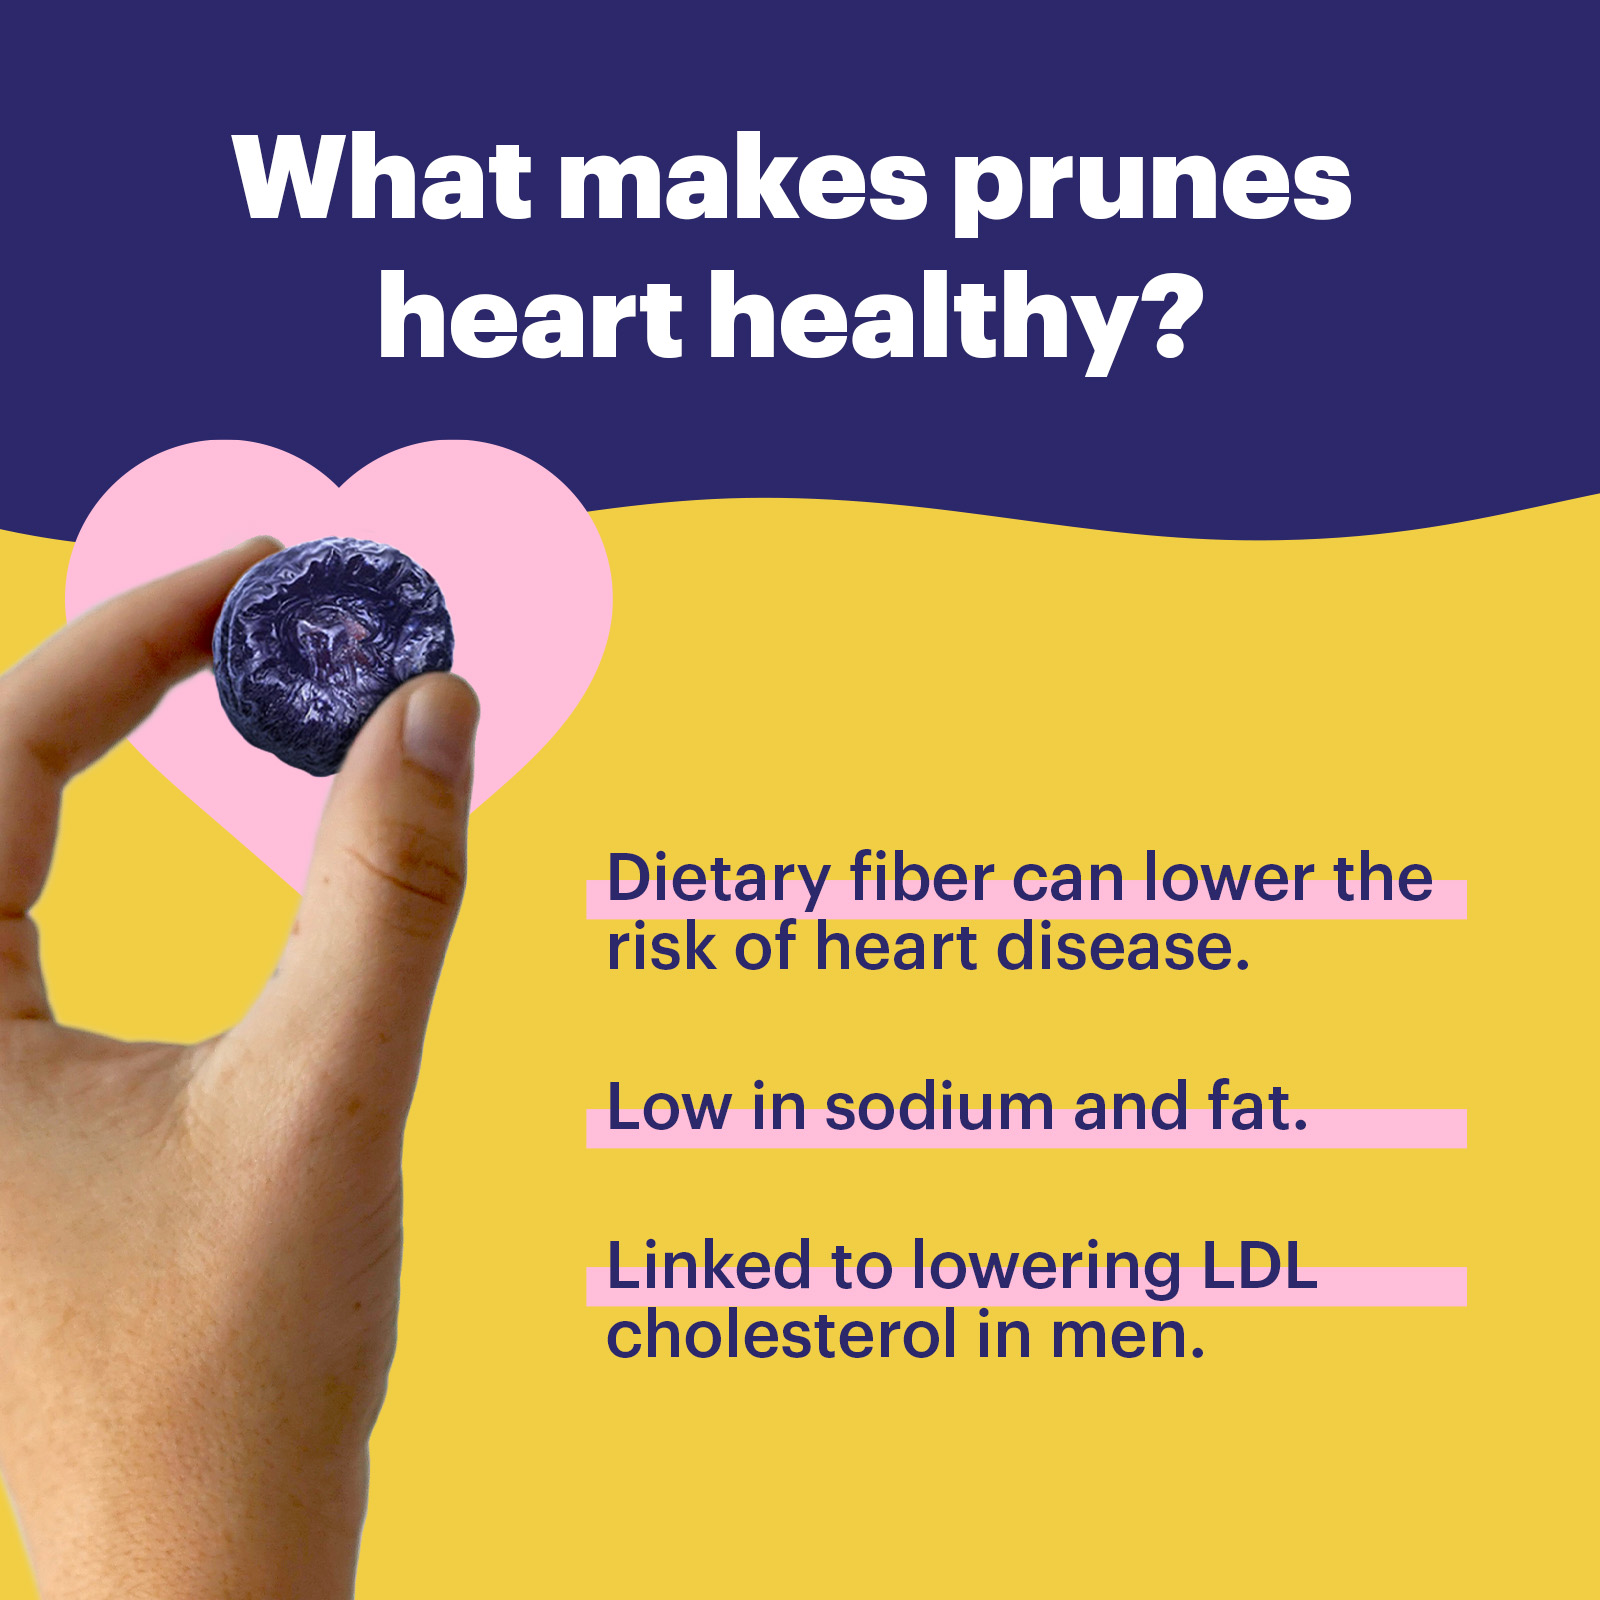 What Makes Prunes Heart Healthy